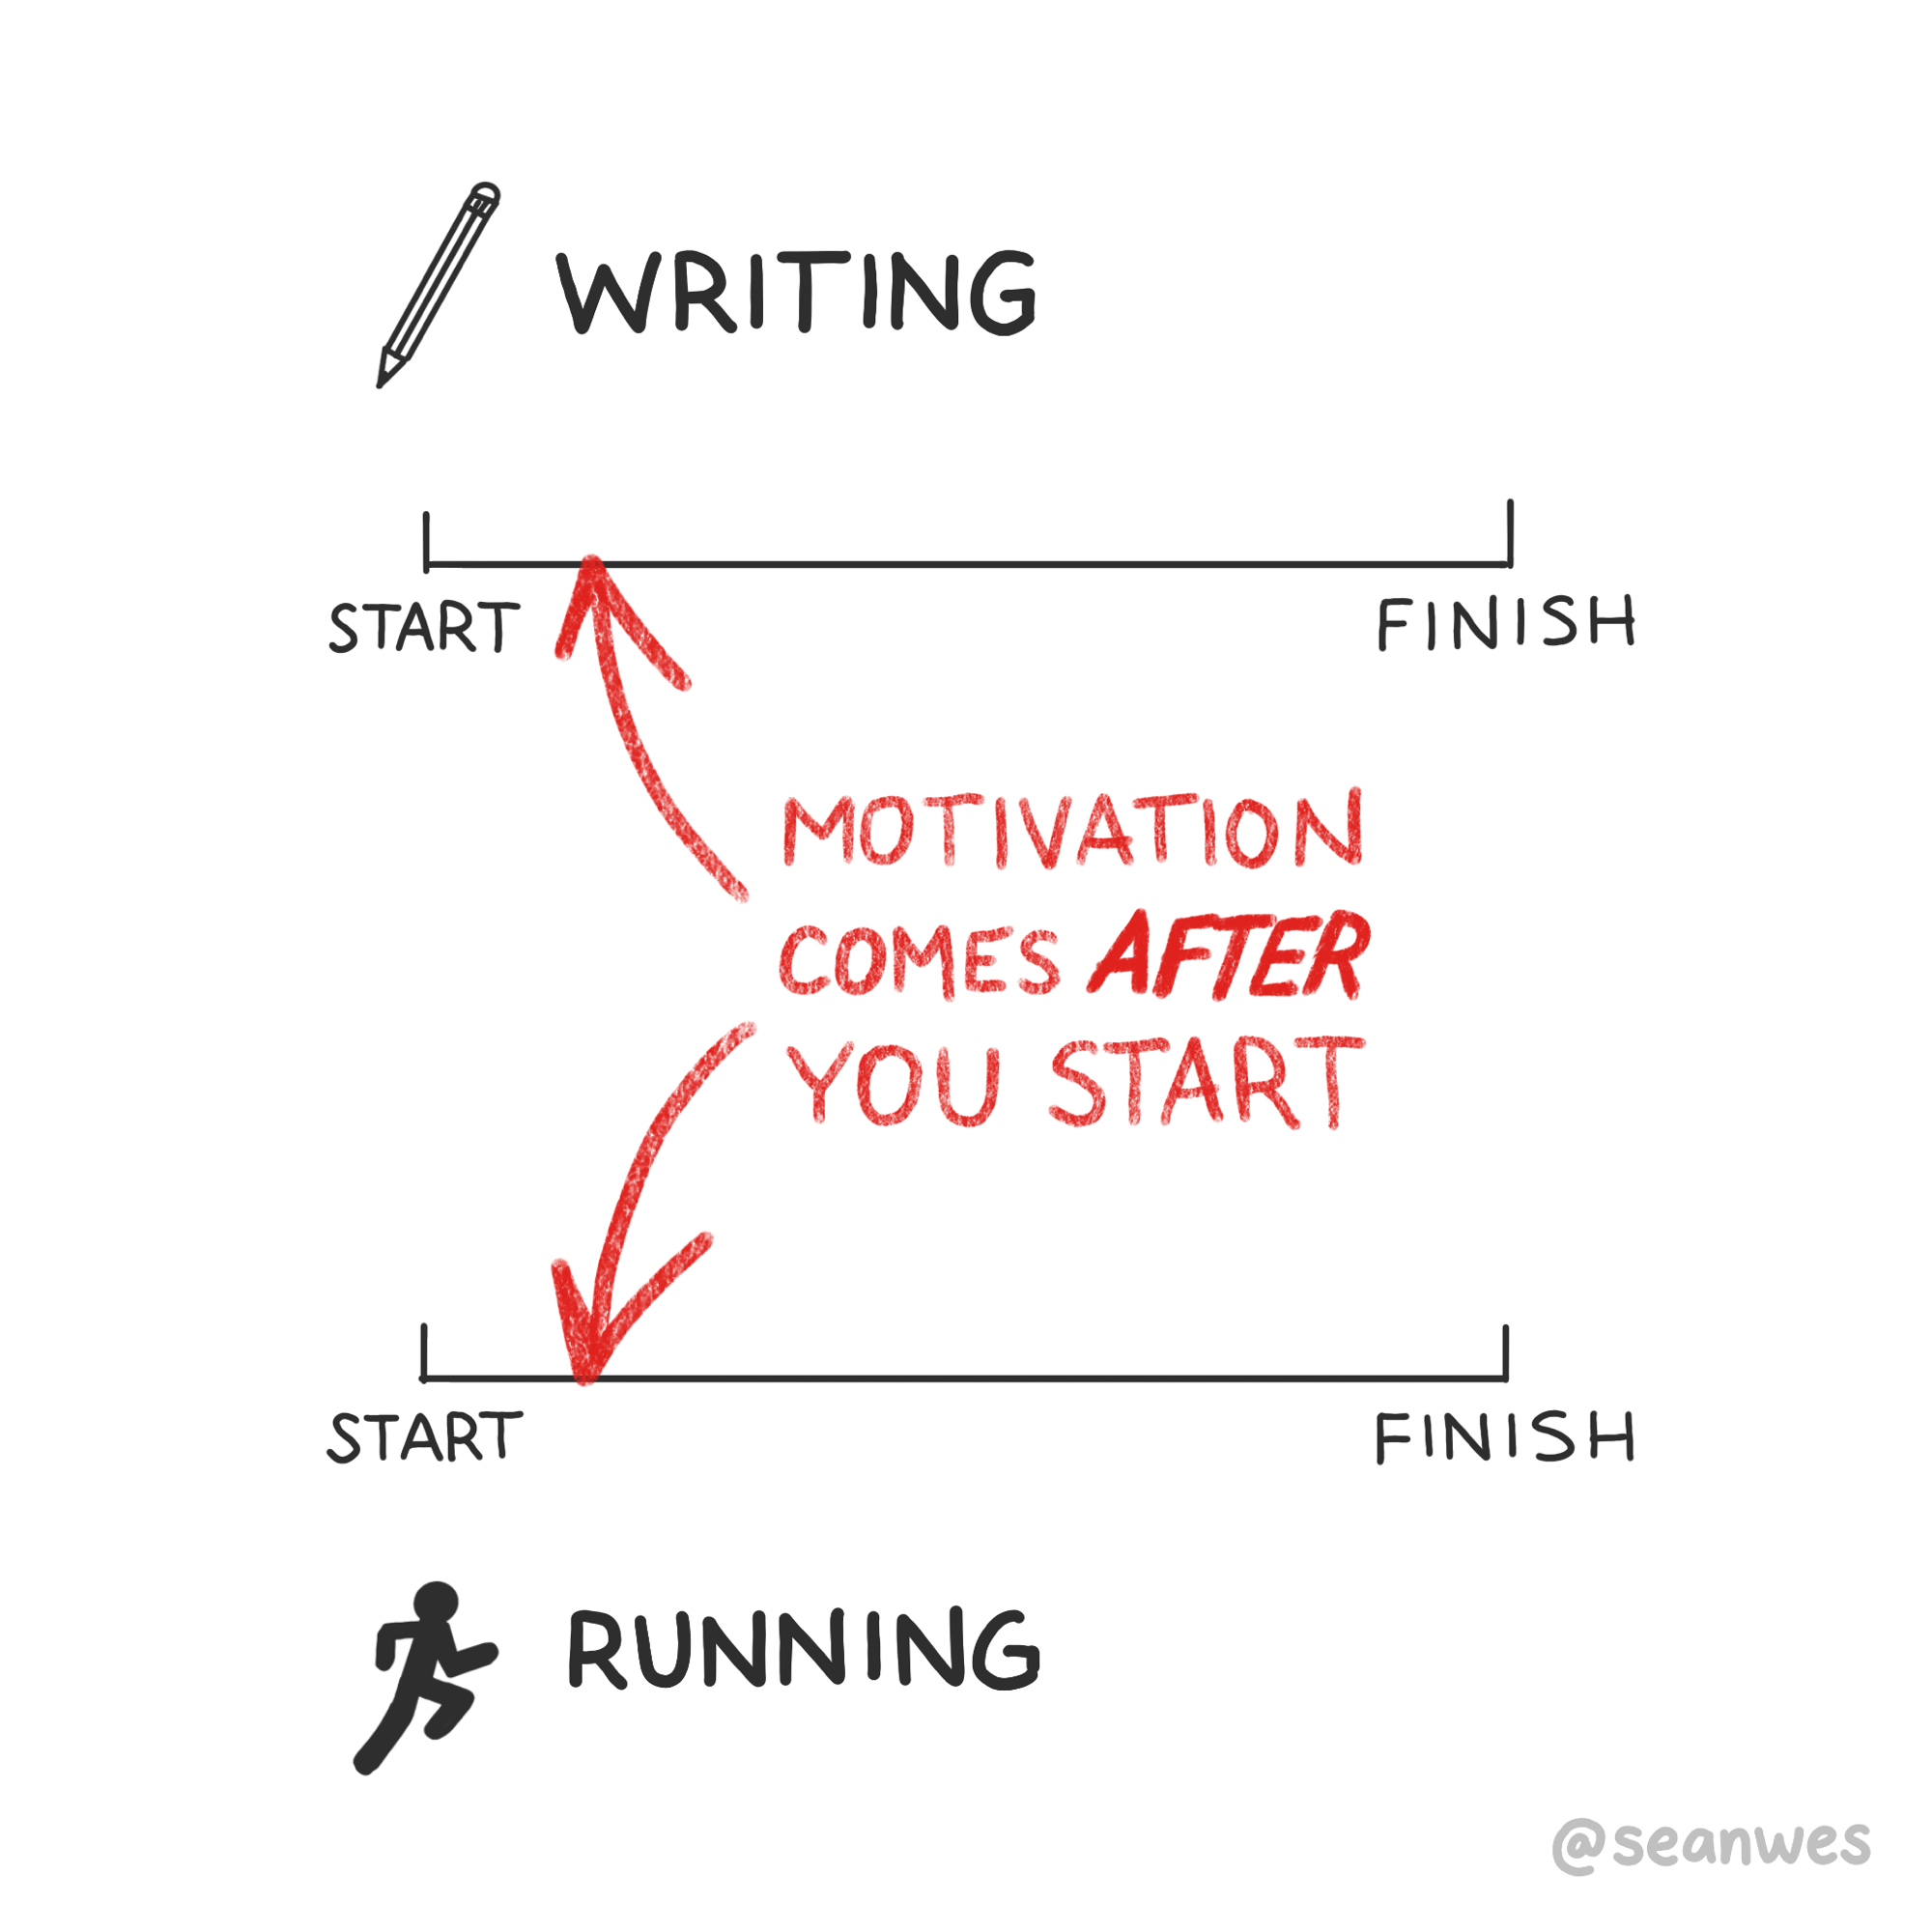 / WRITING START MOTIVATION .. COMES AFTER YOU START FINISH START F|N|SH https://inspirational.ly